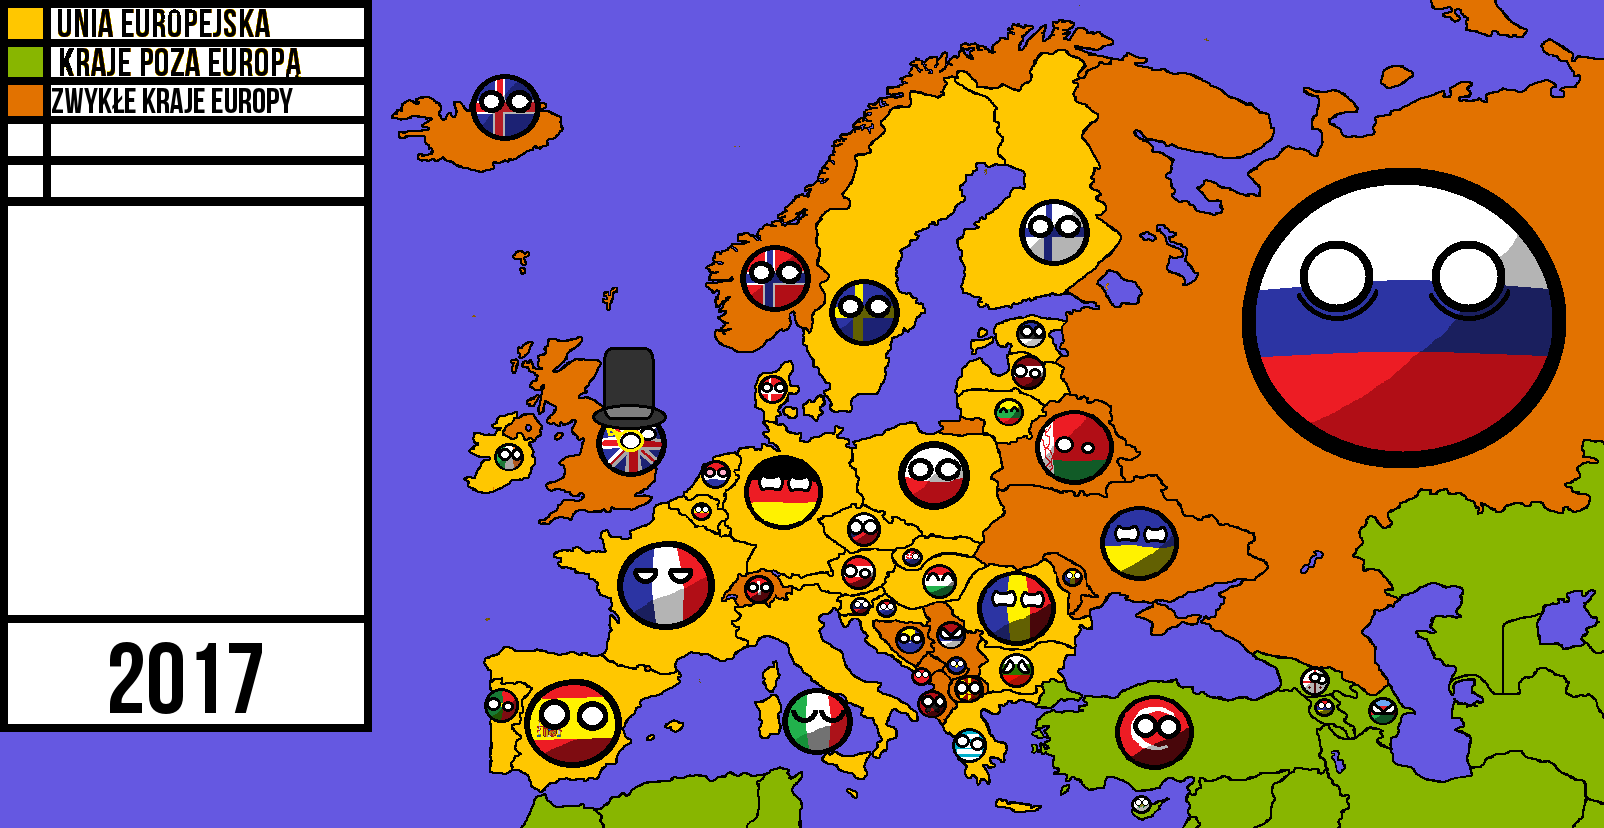 image europe map by polonia hd mapping png thefutureofeuropes